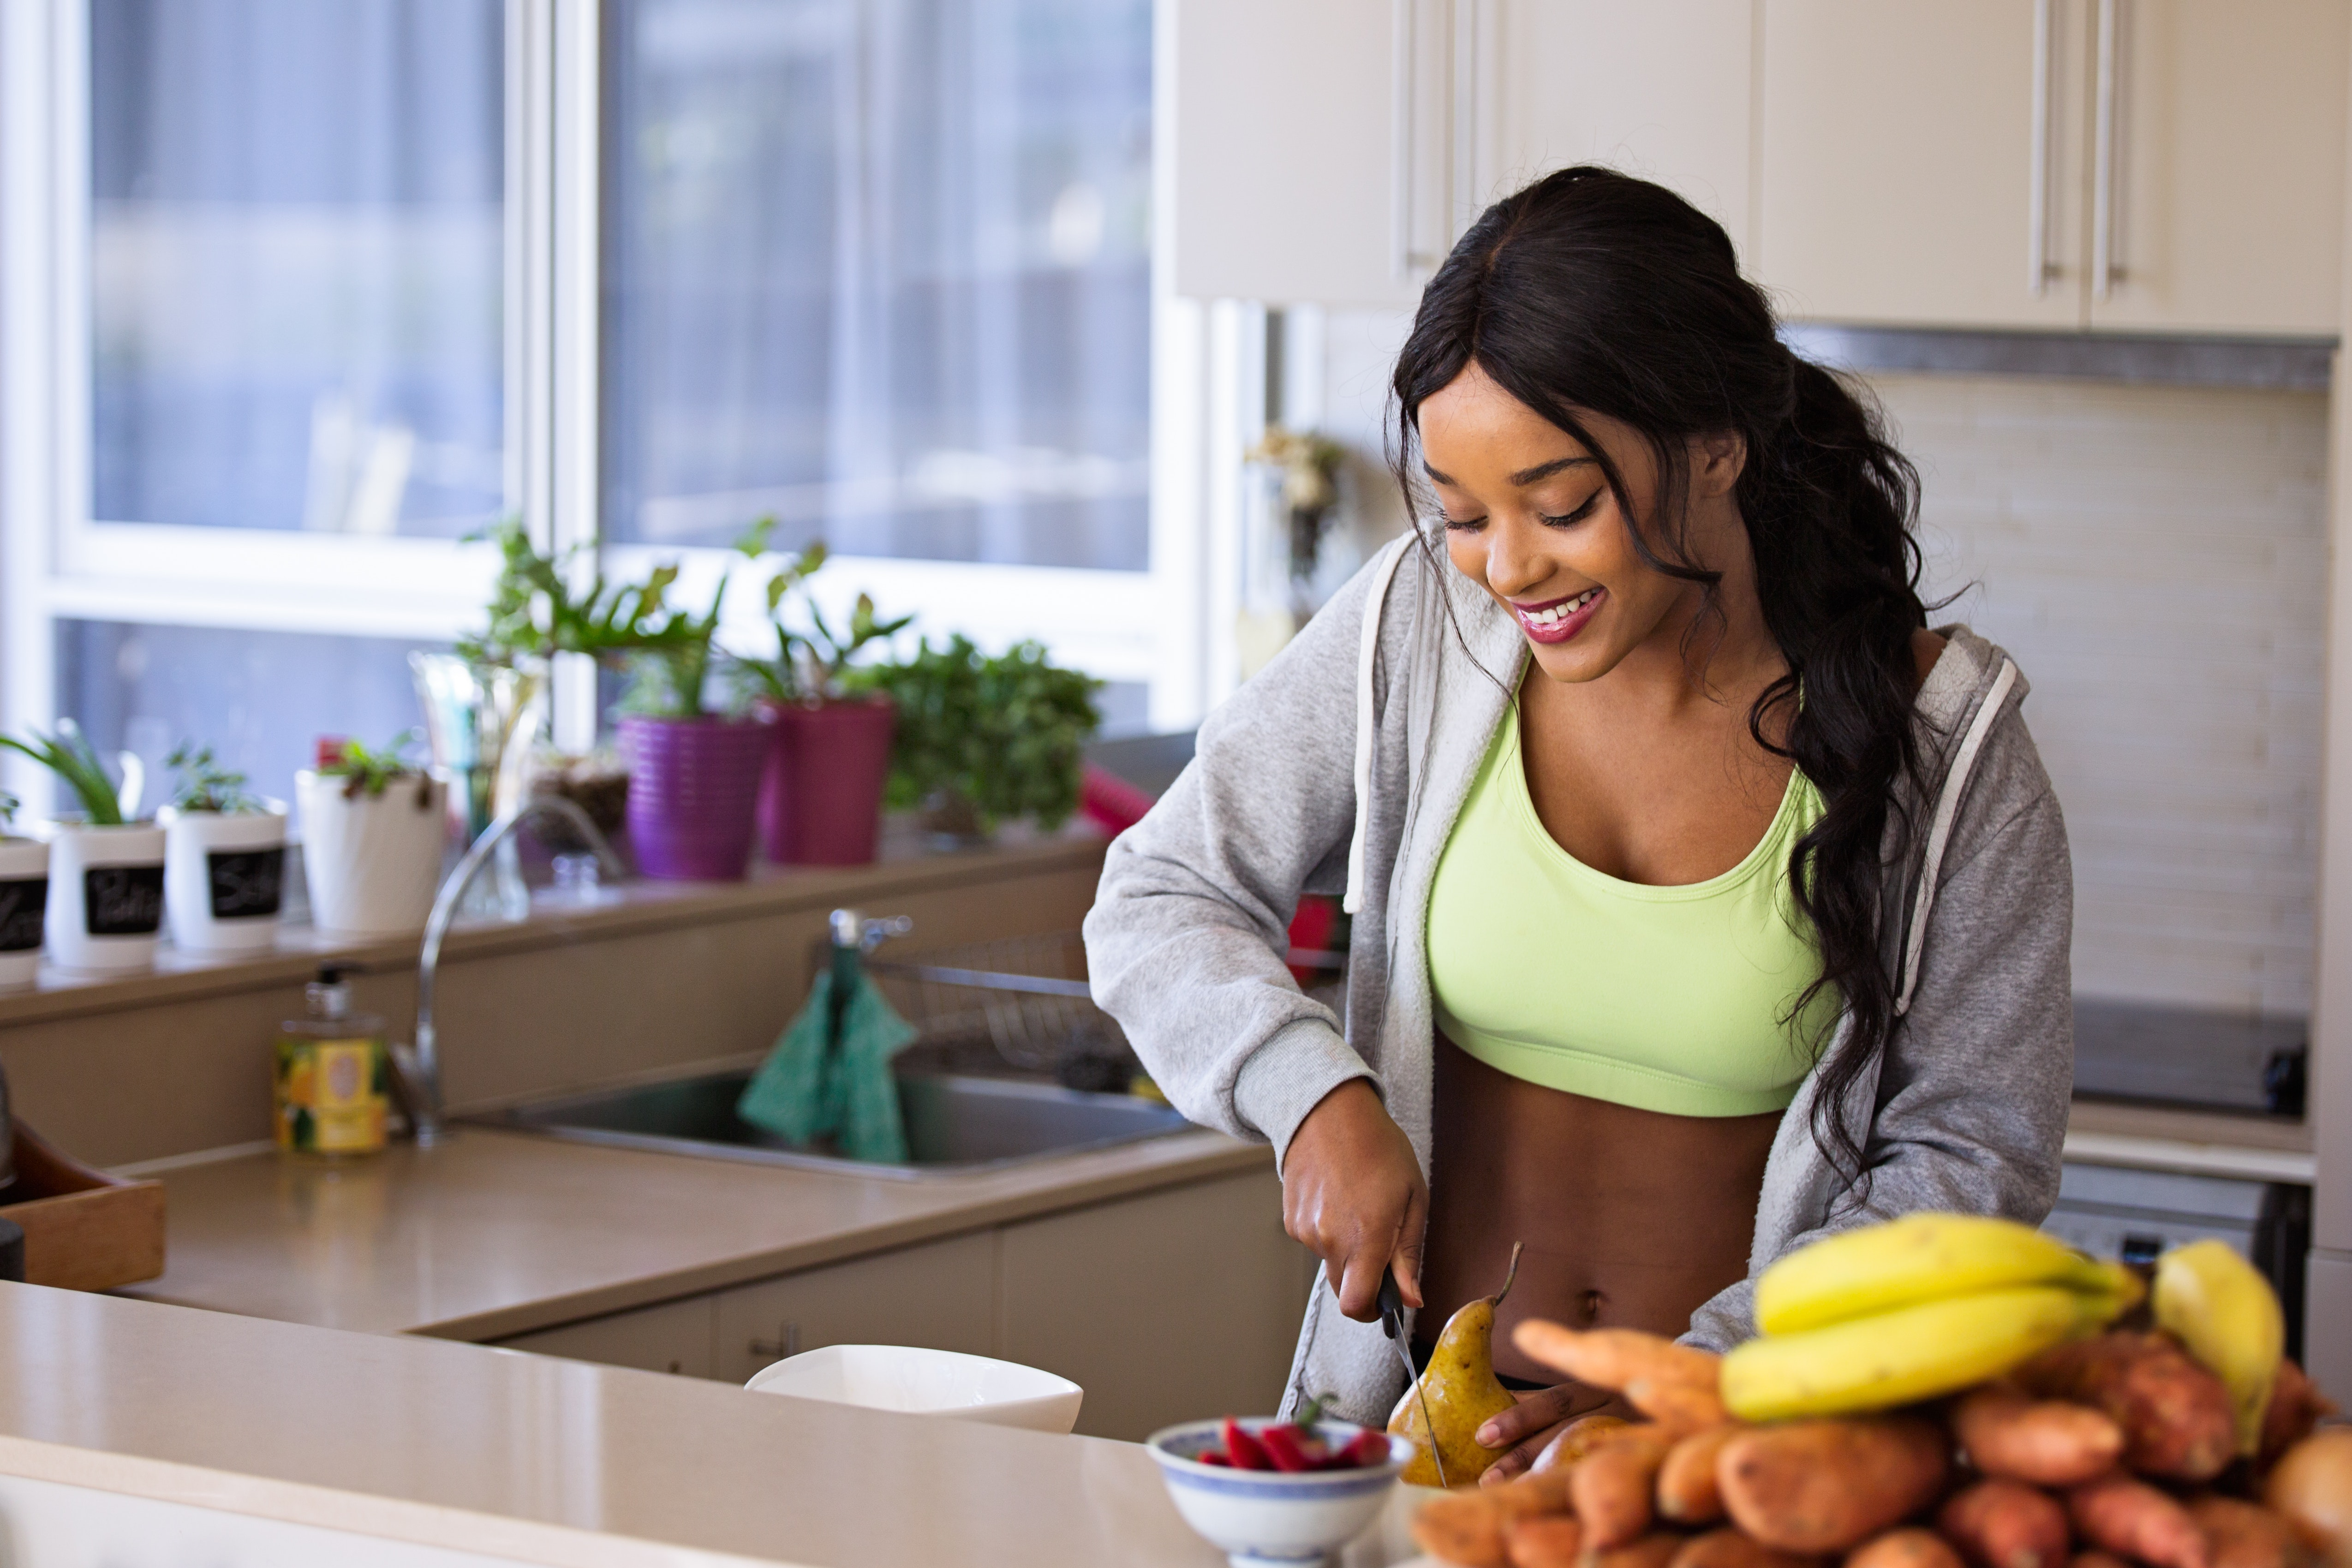 gym food and weight loss diets